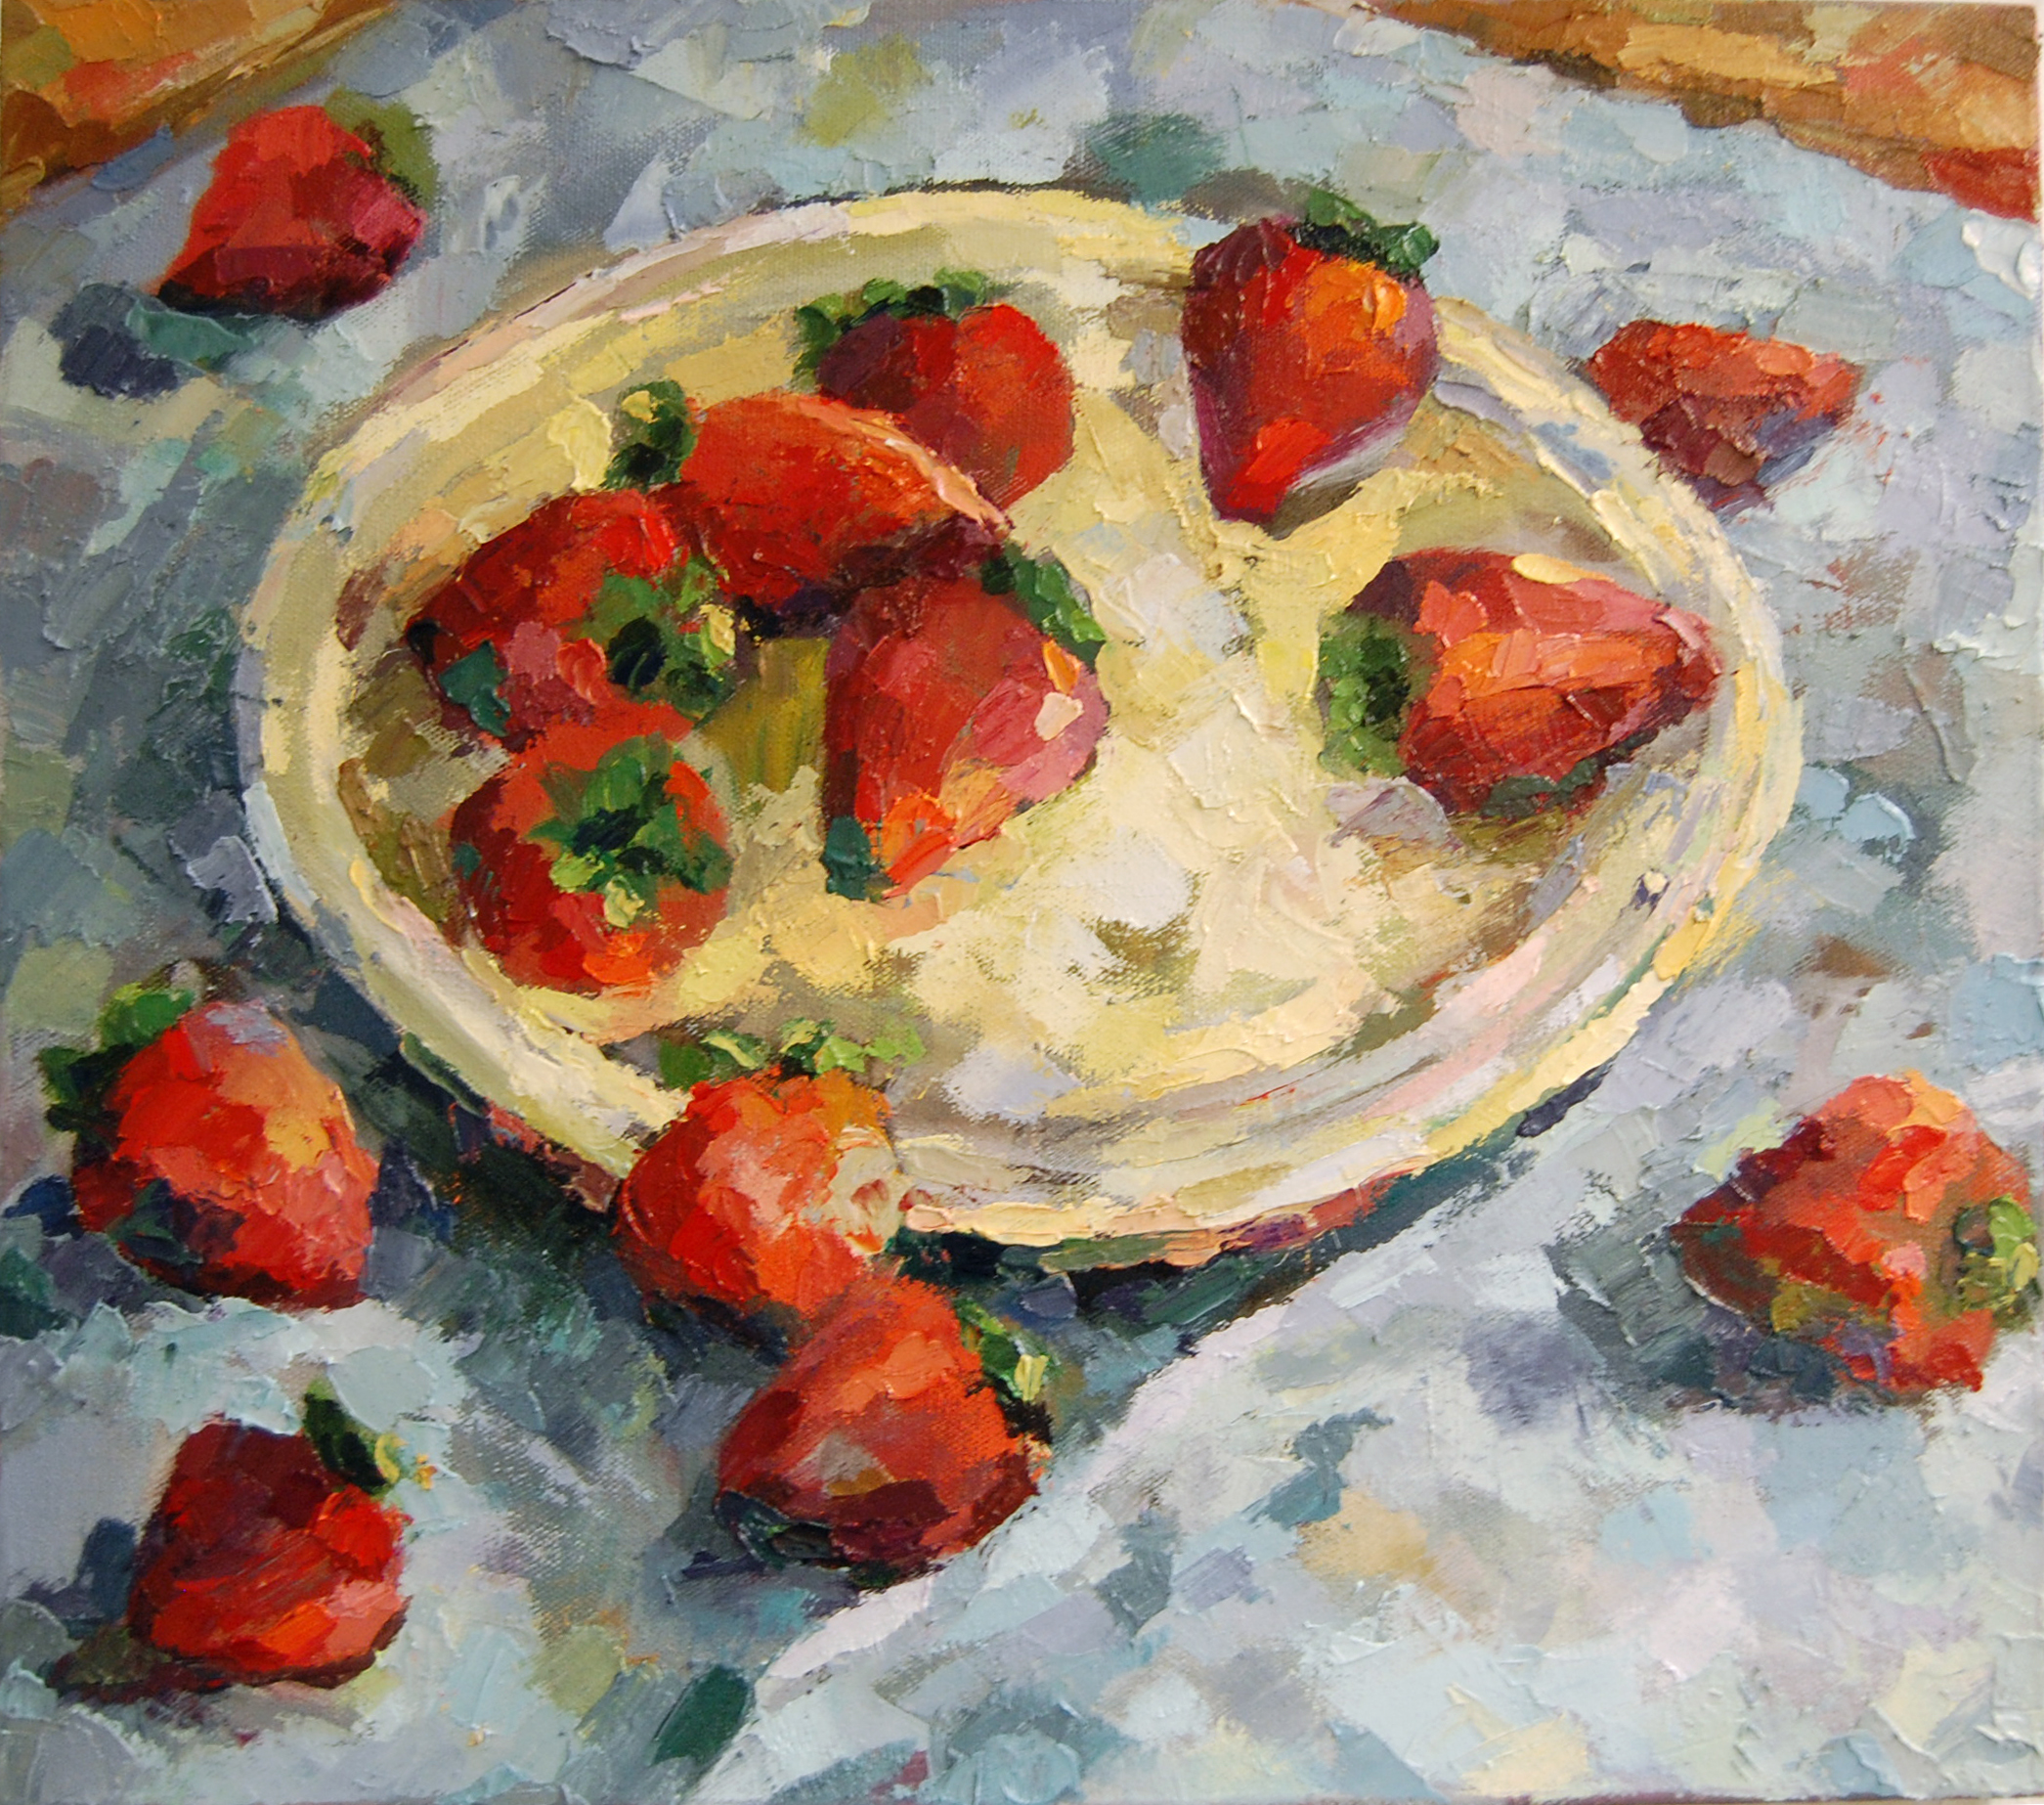 Strawberries on a Yellow Plate, Oil on canvas, 2011